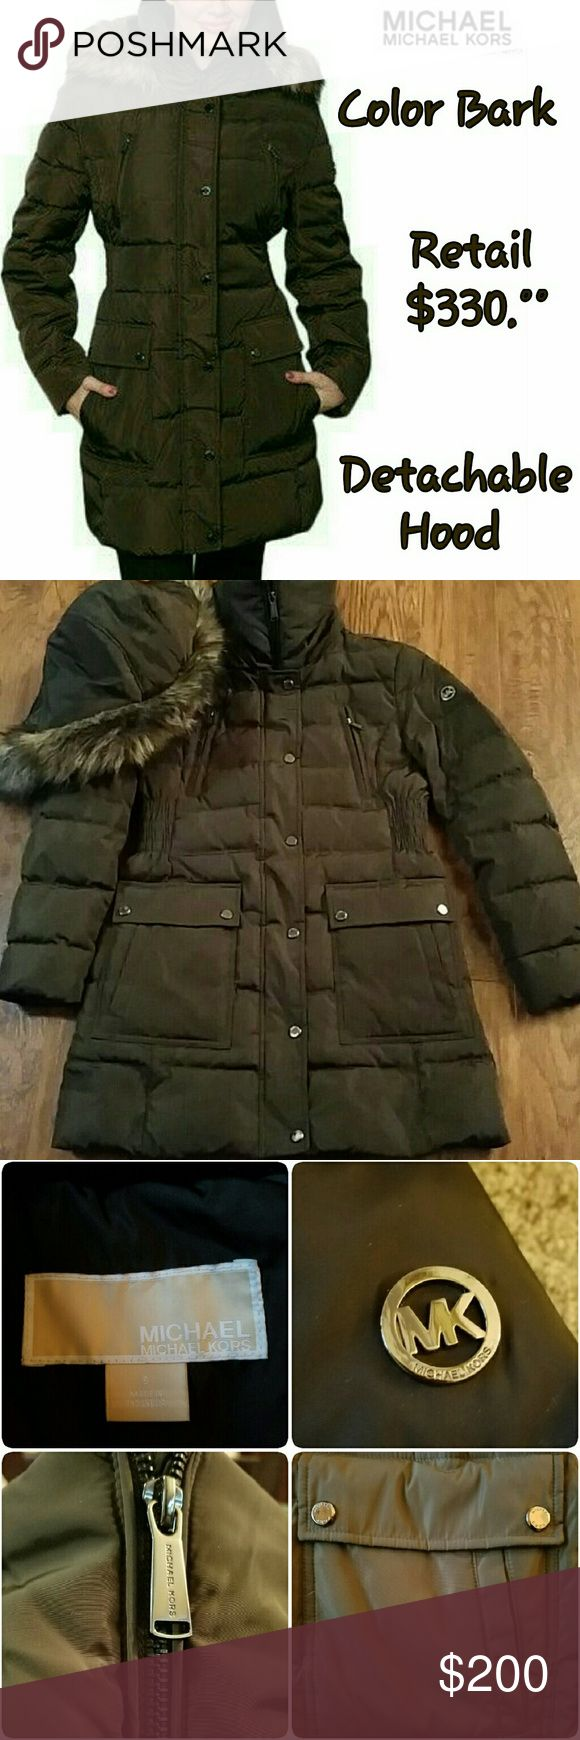 MICHAEL KORS HOODED QUILTED PUFFER COAT! New without tags (I do have the tags that came off, with moving I'm trying hard to find them :( Authentic  Size ~ Small **(I wear a Med & it fits me great!) So must be Over Sized Small!  Color ~ Bark (Brownish)  Retail ~ $330.00 Please chk out my other listings!  Bundle & Save!  Thank you! :) ♡  ♡♡♡ Michael by MICHAEL KORS ♡♡♡  ☆☆☆ Hooded Quilted Puffer Coat with faux fur & detachable Hood ☆☆☆  》 Tapered waist 》 MK EMBLEM 》 Every button & zipper on…